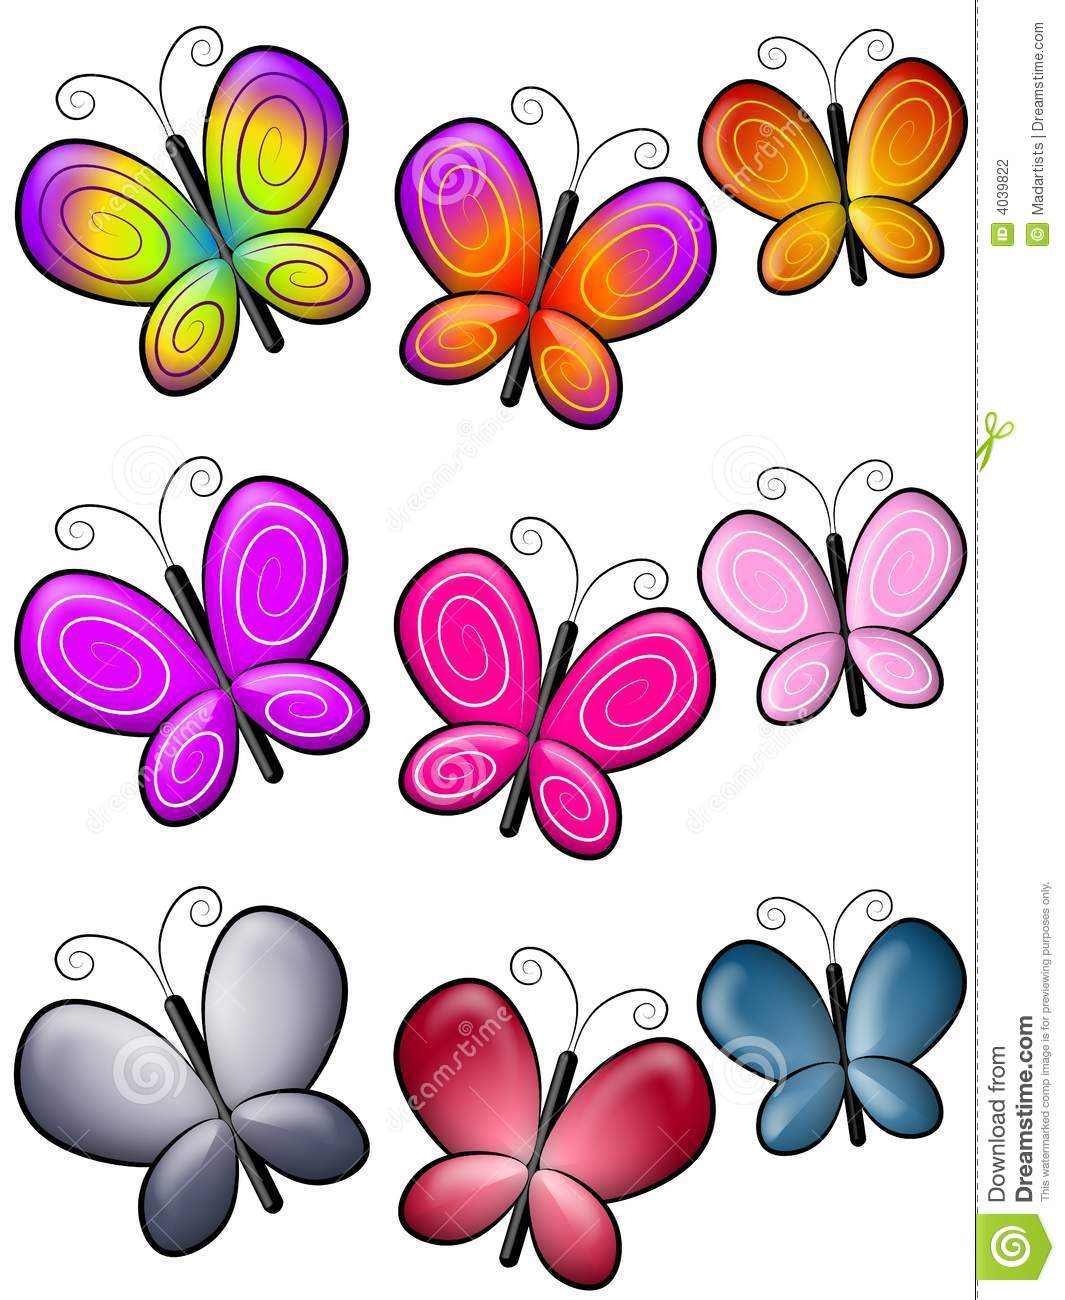 Butterflies pictures from clipart vector royalty free stock Butterflies pictures from clipart - ClipartFest vector royalty free stock